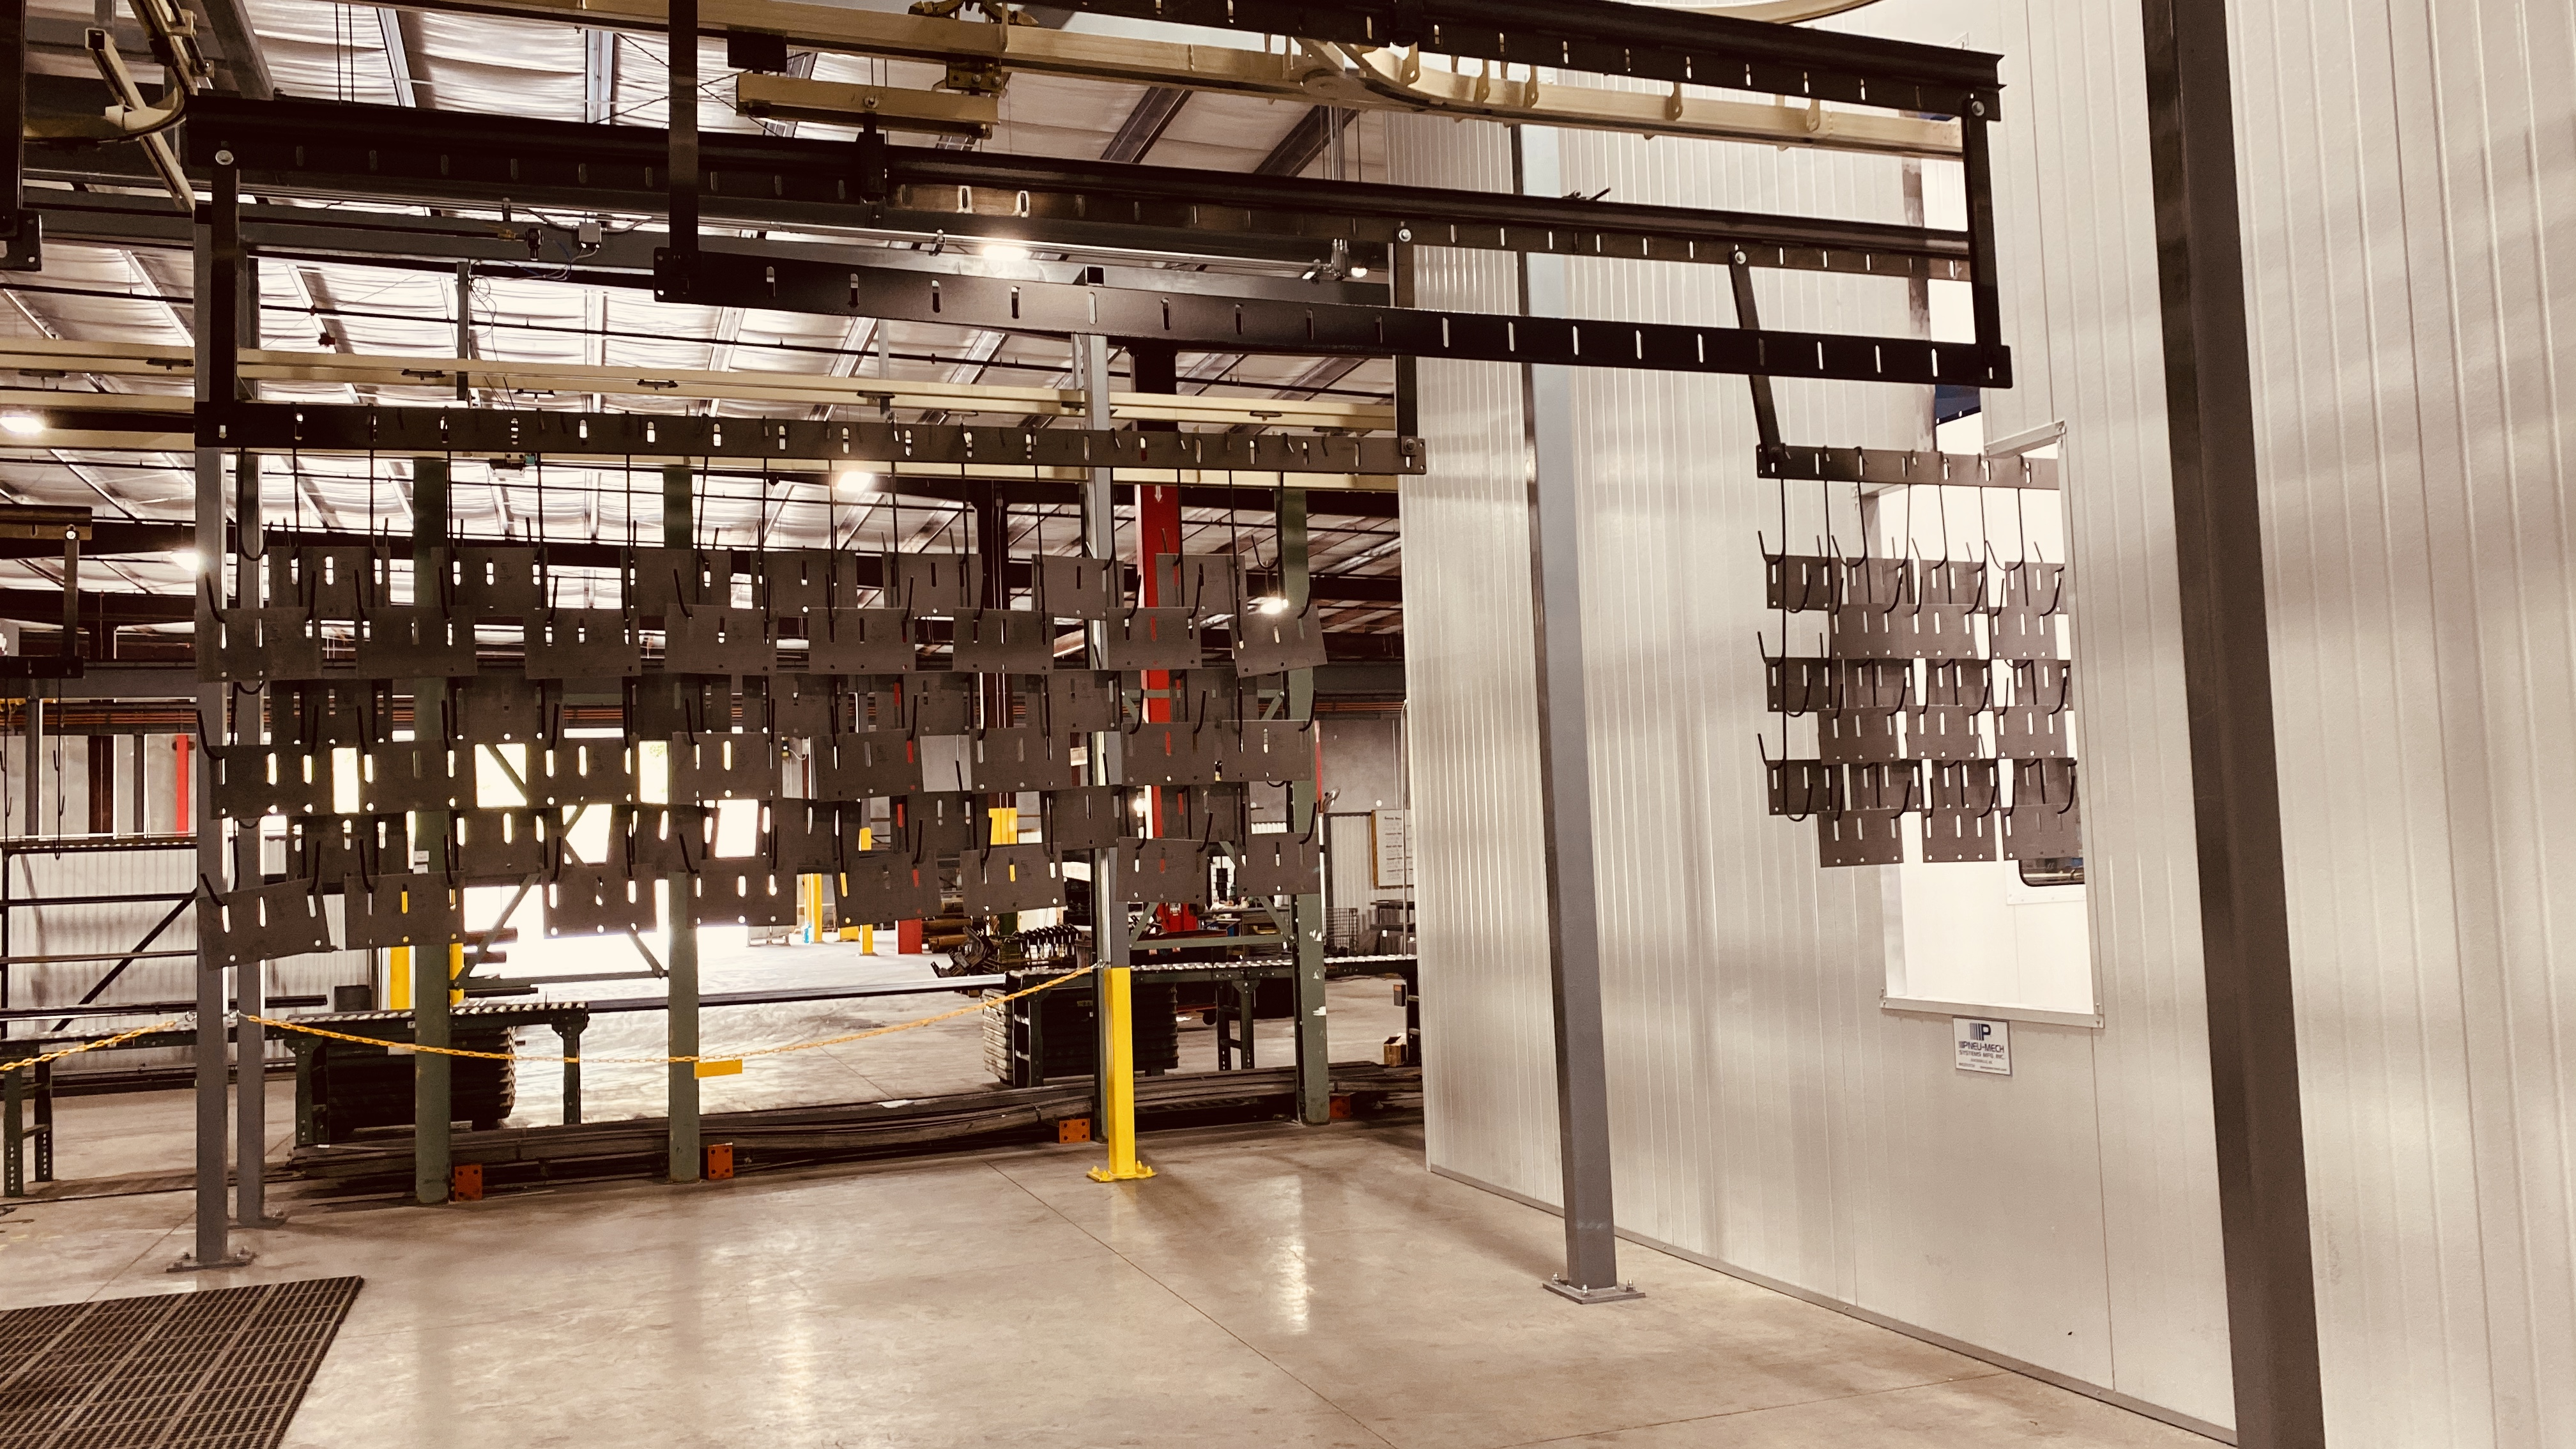 Overhead Door Components going through Powder Coating Assembly Line